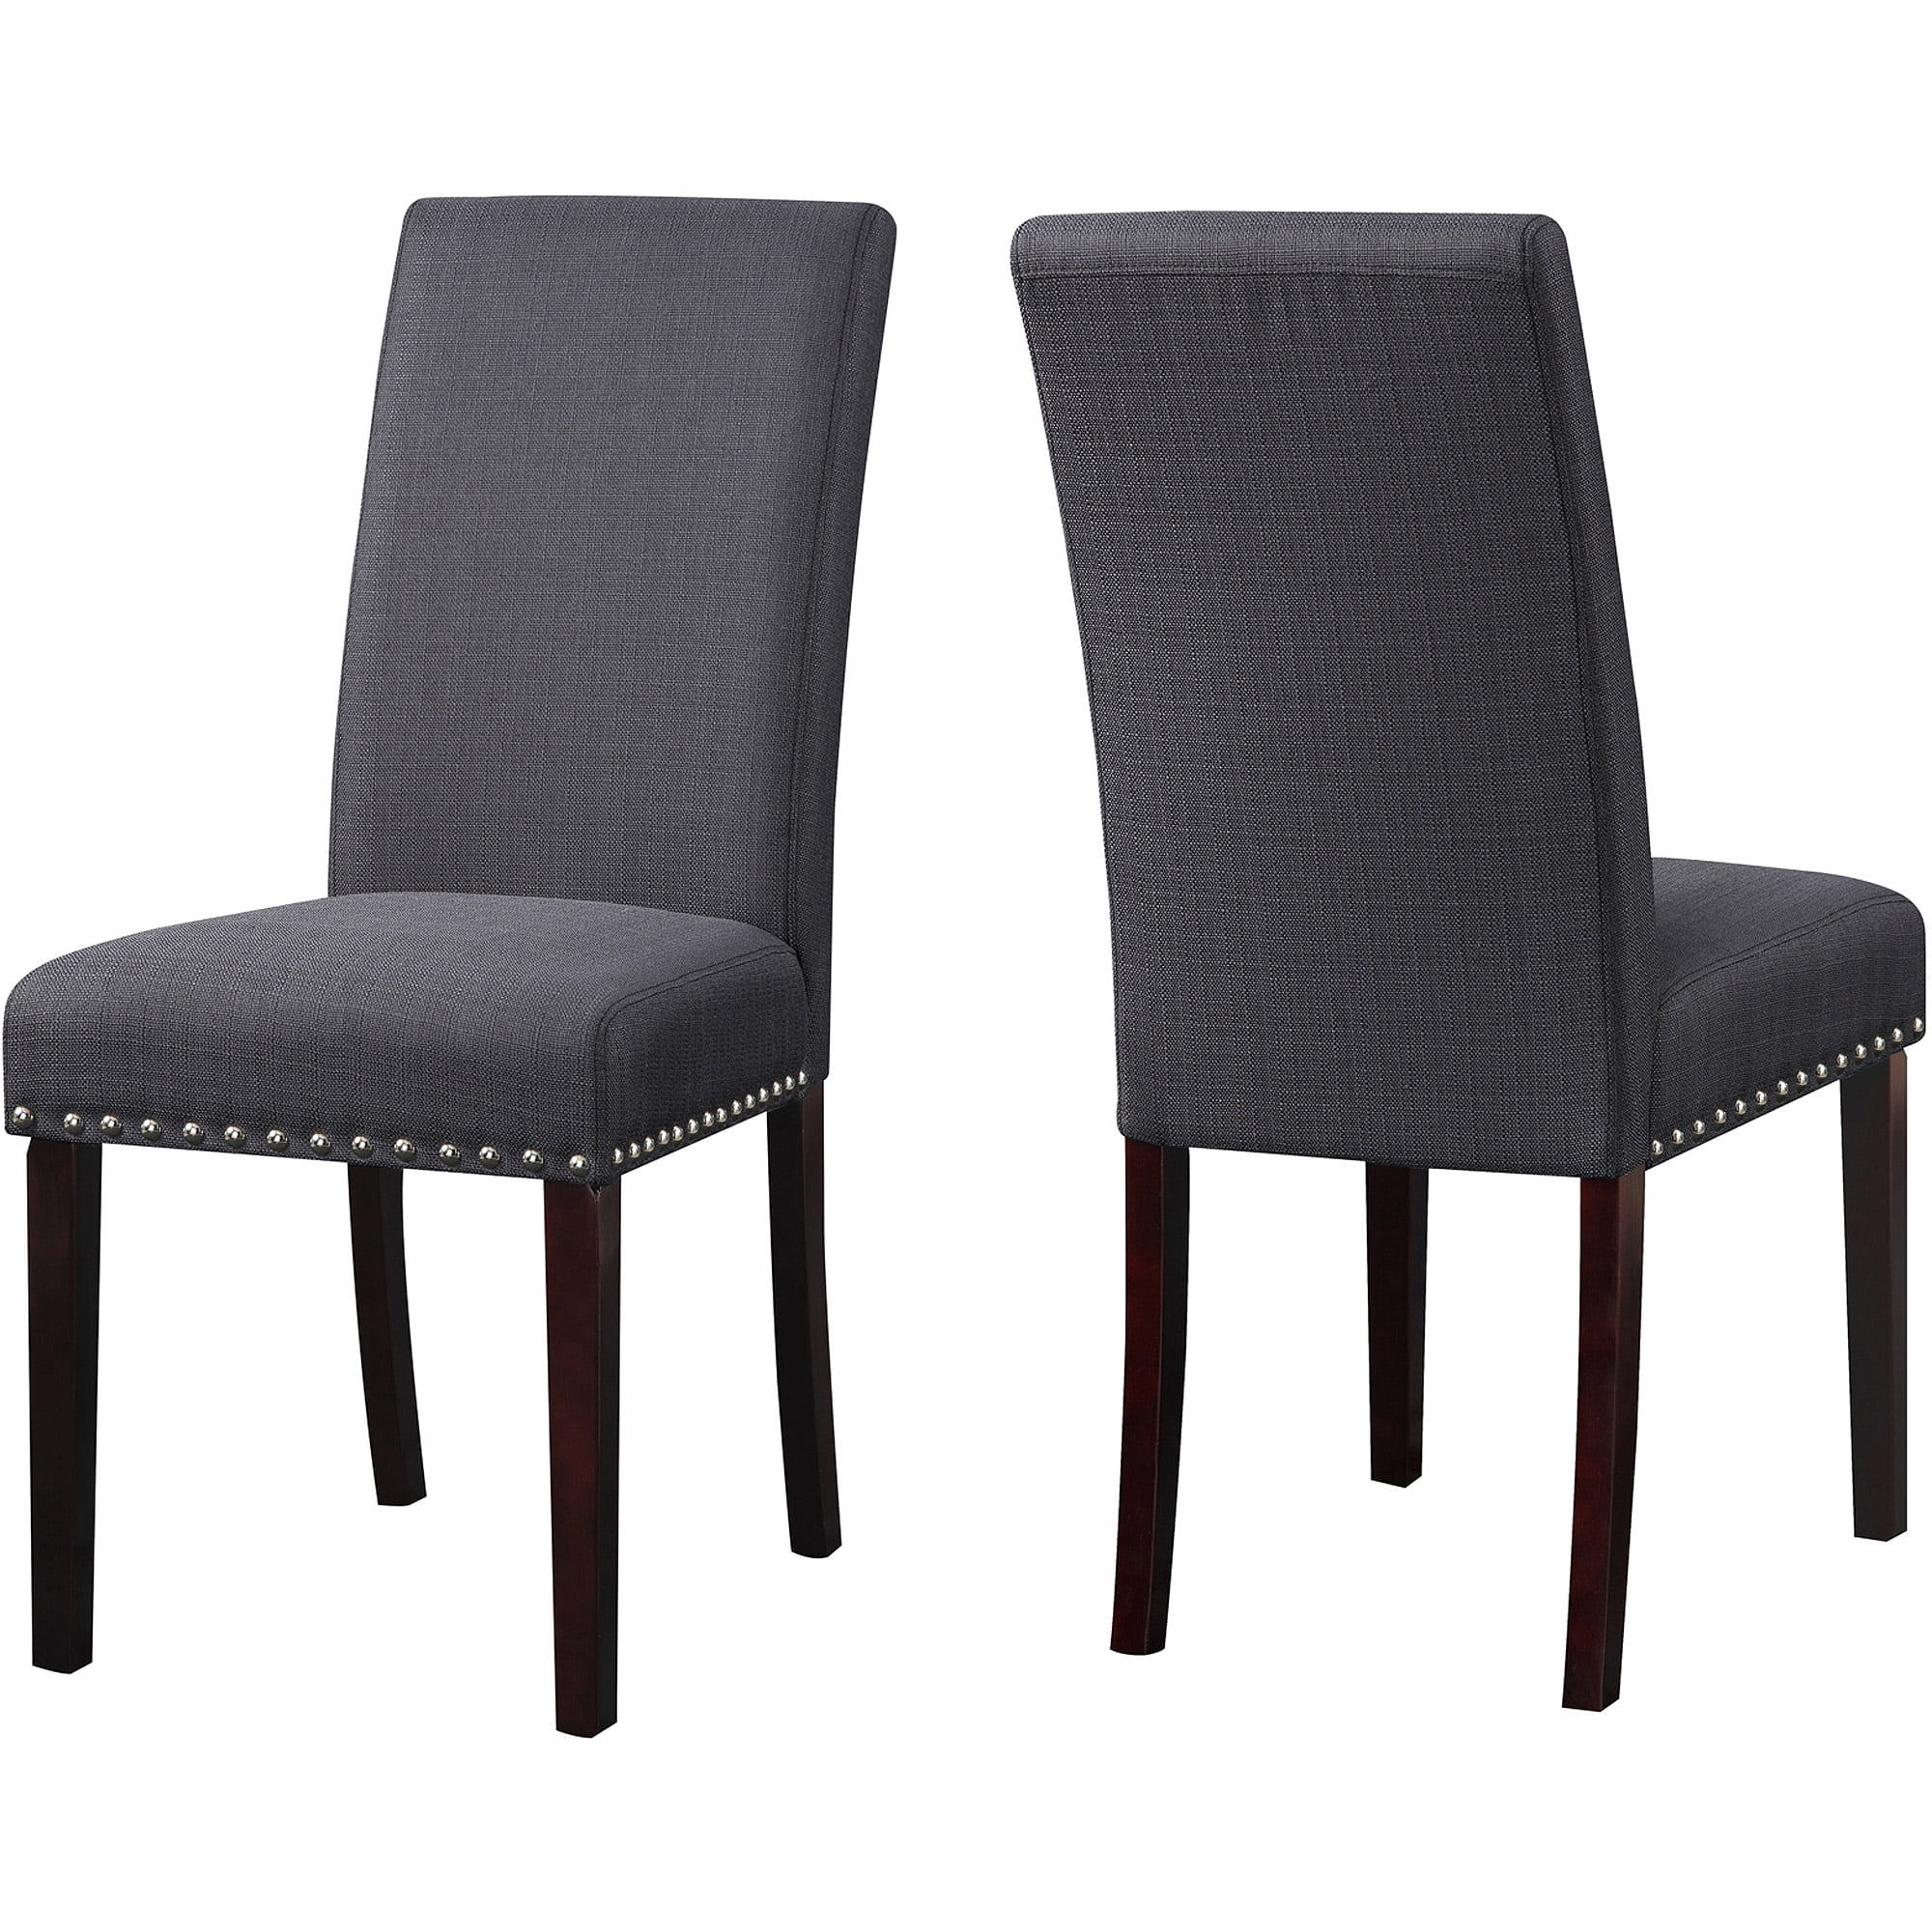 Superieur DHI Nice Nail Head Upholstered Dining Chair, 2 Pack, Multiple Colors    Walmart.com